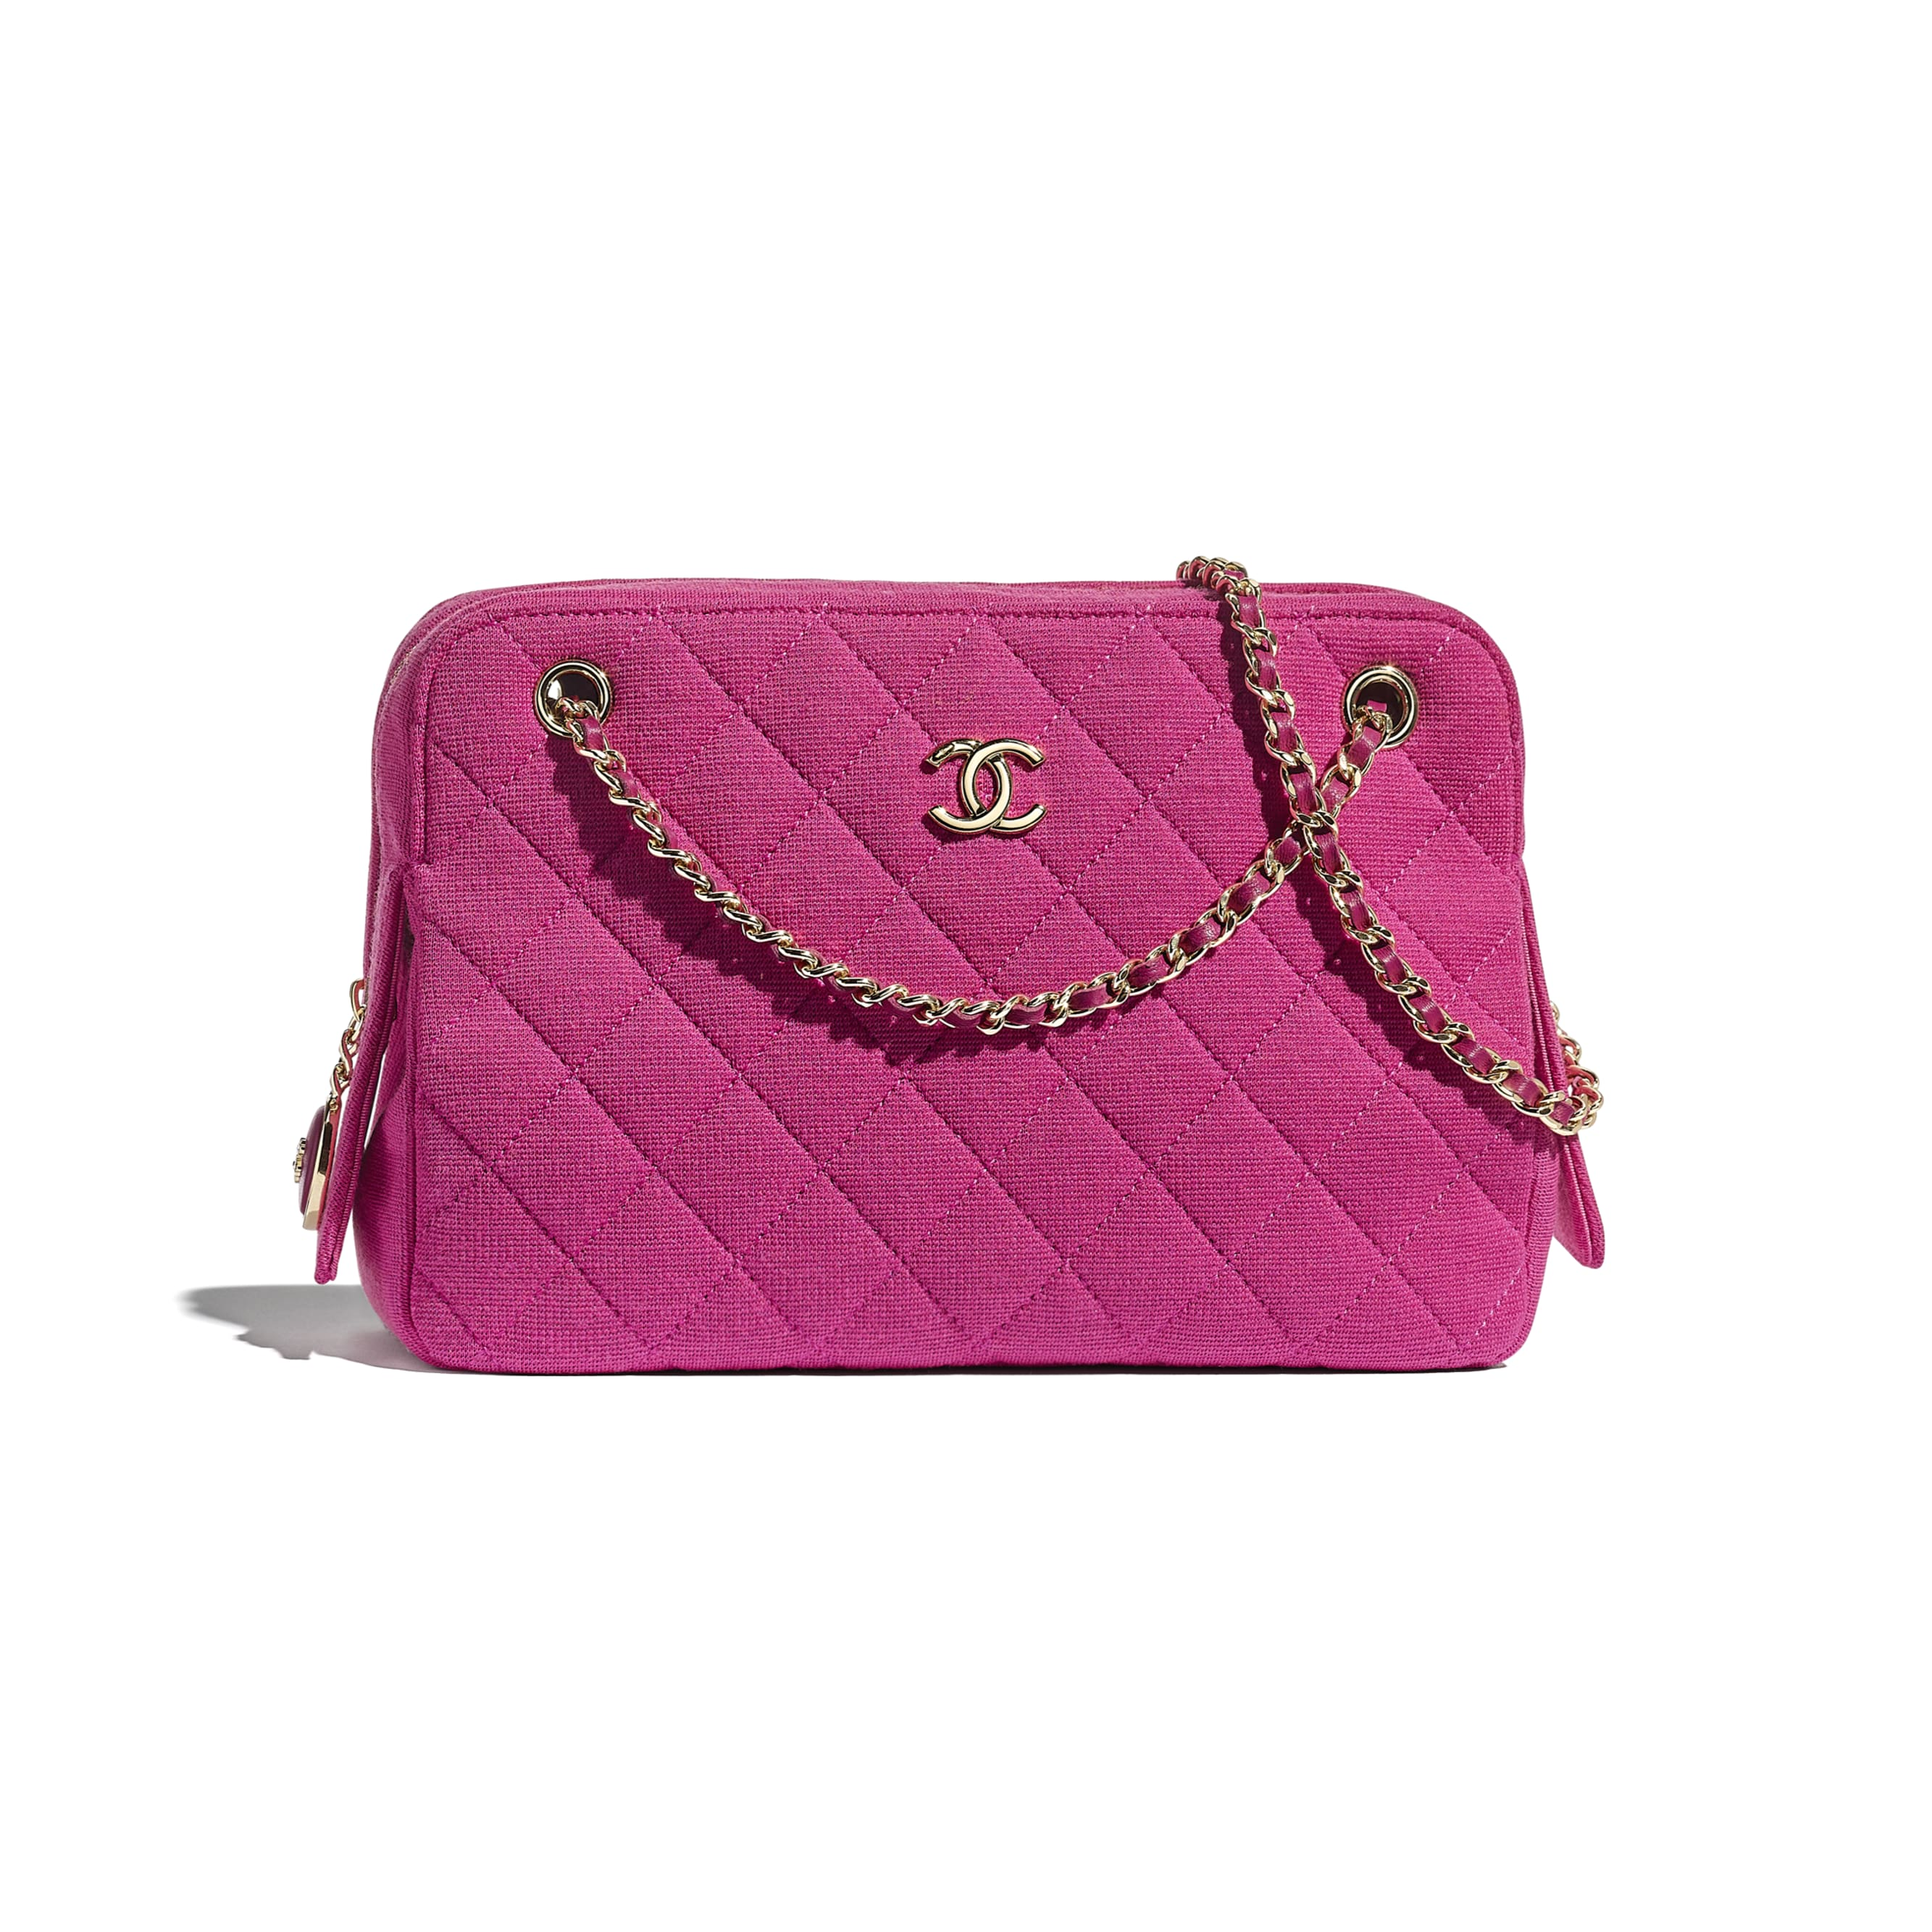 Camera Case - Pink - Jersey & Gold Metal - CHANEL - Default view - see standard sized version